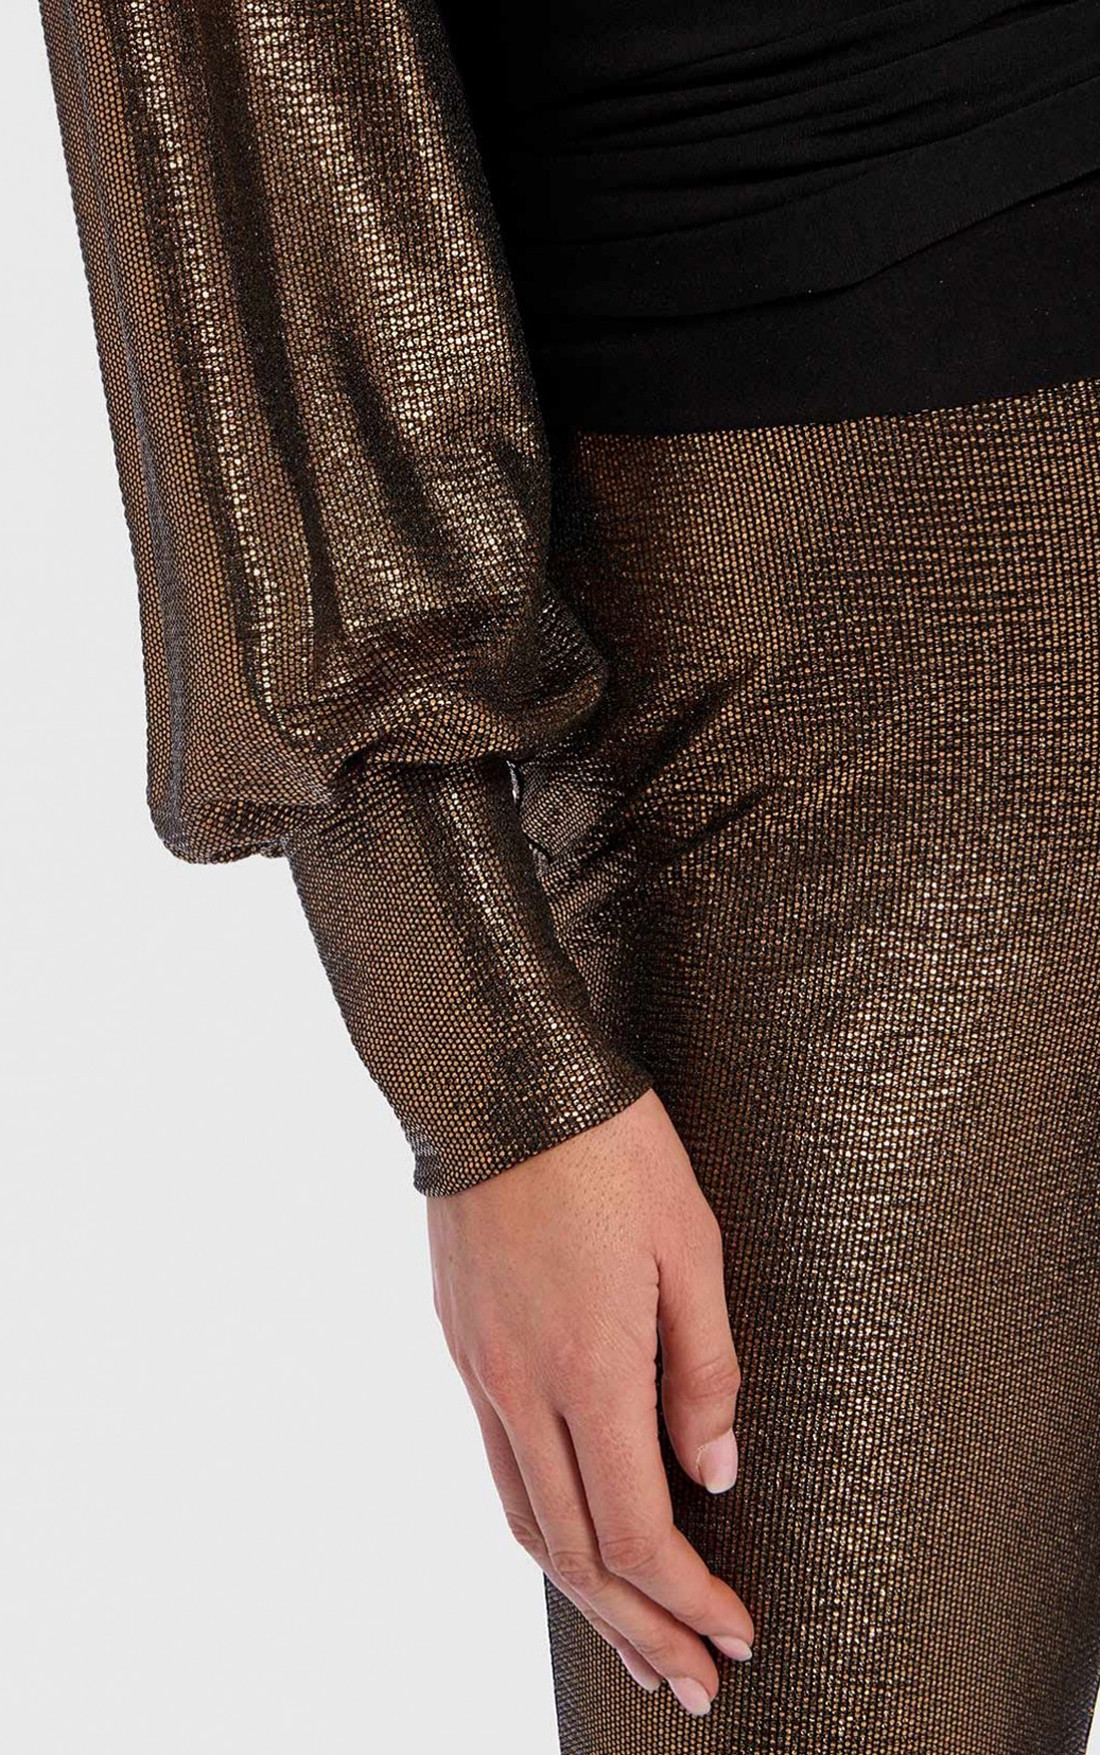 Forever Unique - Remie Metallic Gold And Black Long Sleeve Wrap Top (TJ9709)